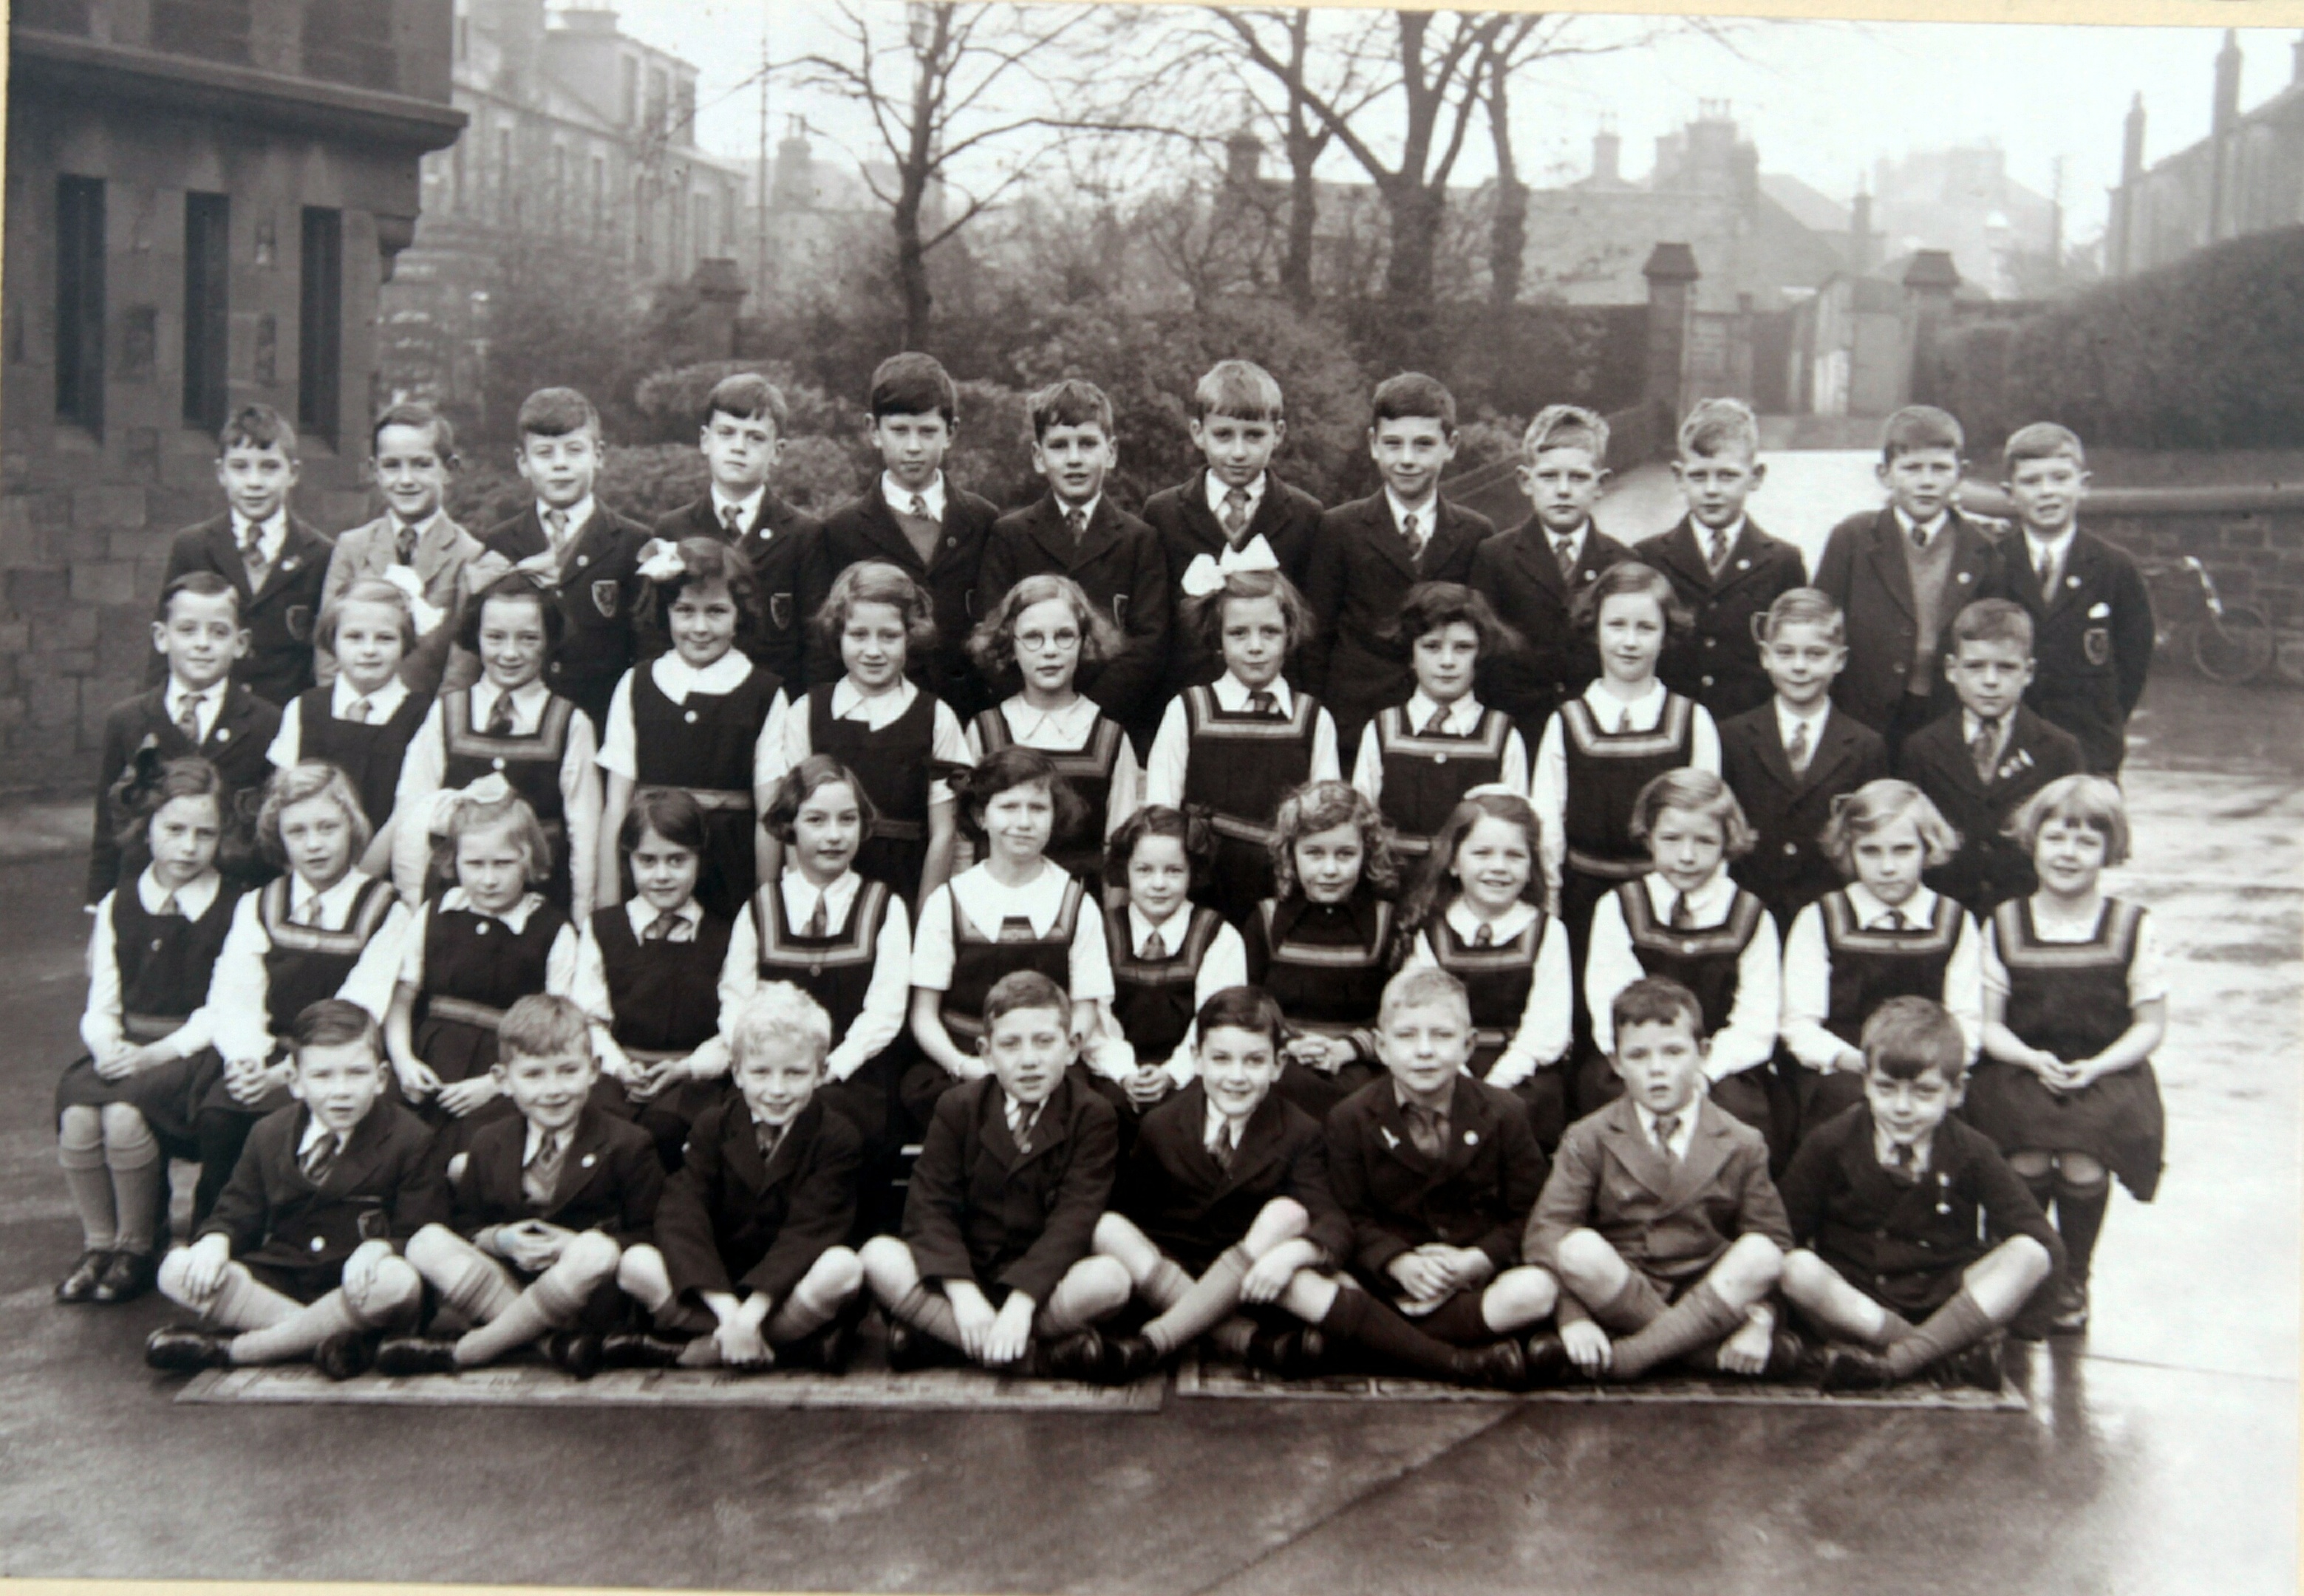 A class photo from Morgan Primary in 1938/39